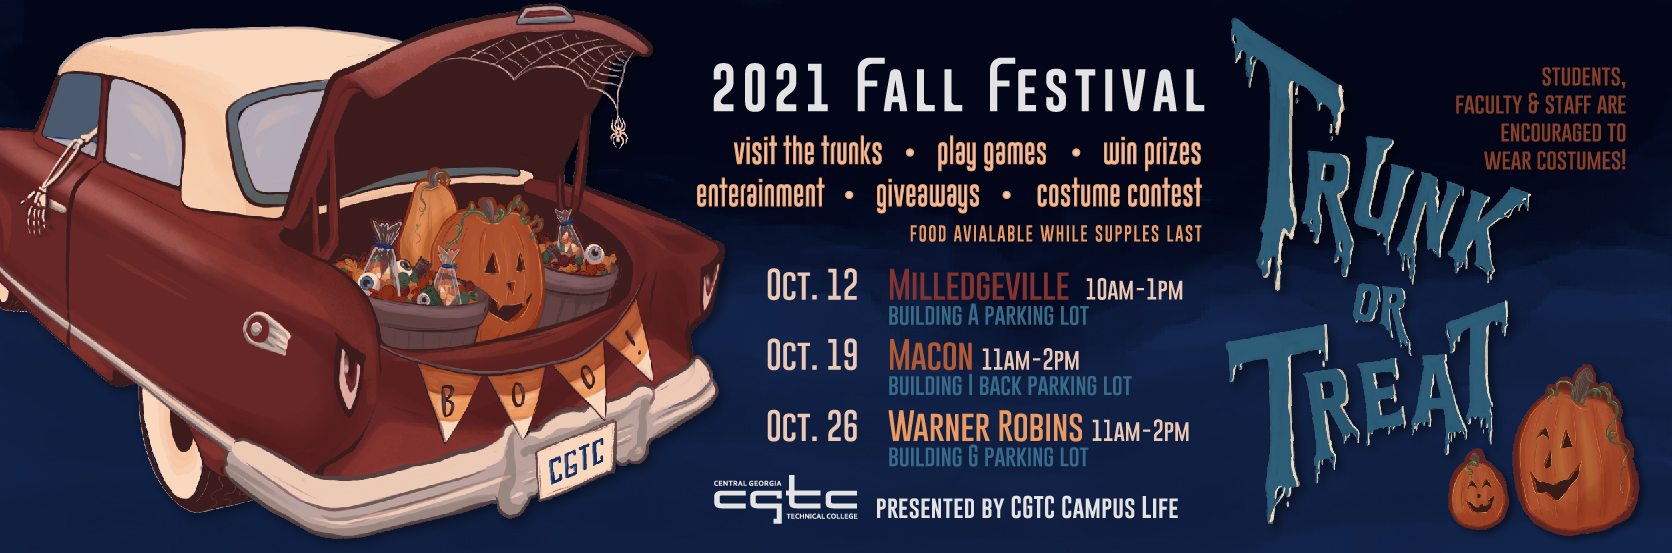 Campus Life Presents the 2021 Fall Festival on October 12 in Milledgeville from 10 a.m. to 1 p.m., October 19 in Macon and October 26 in Warner Robins from 11 a.m. to 2 p.m. .